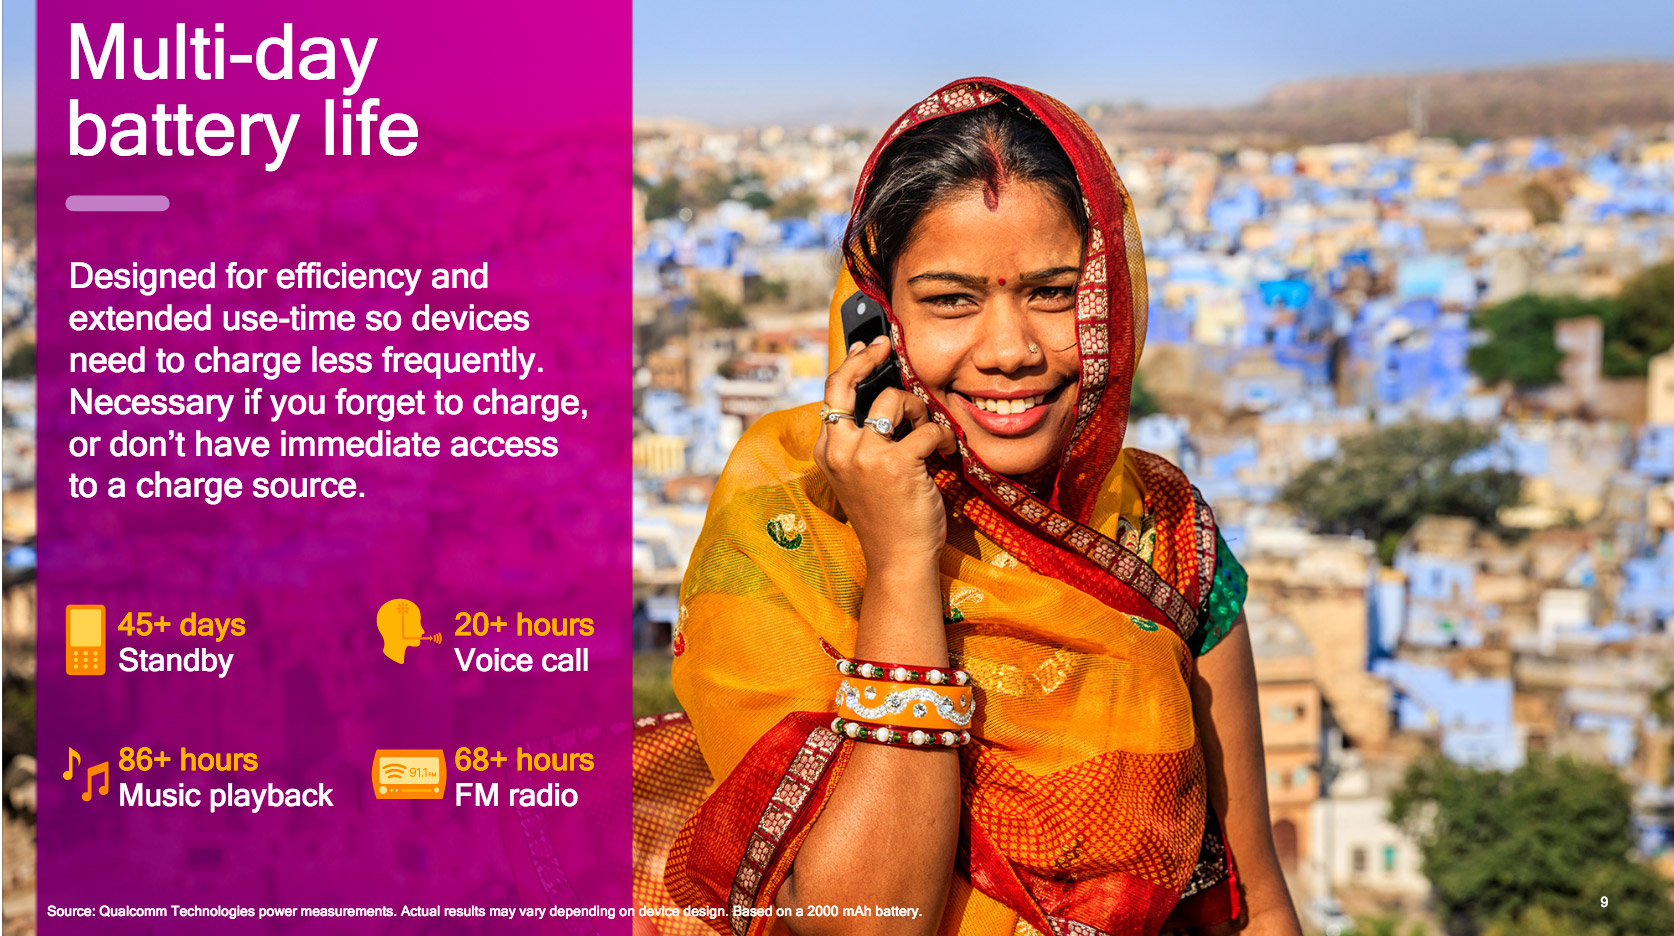 Qualcomm 205 Mobile Platform Brings 4G LTE To Feature Phones And Emerging Markets